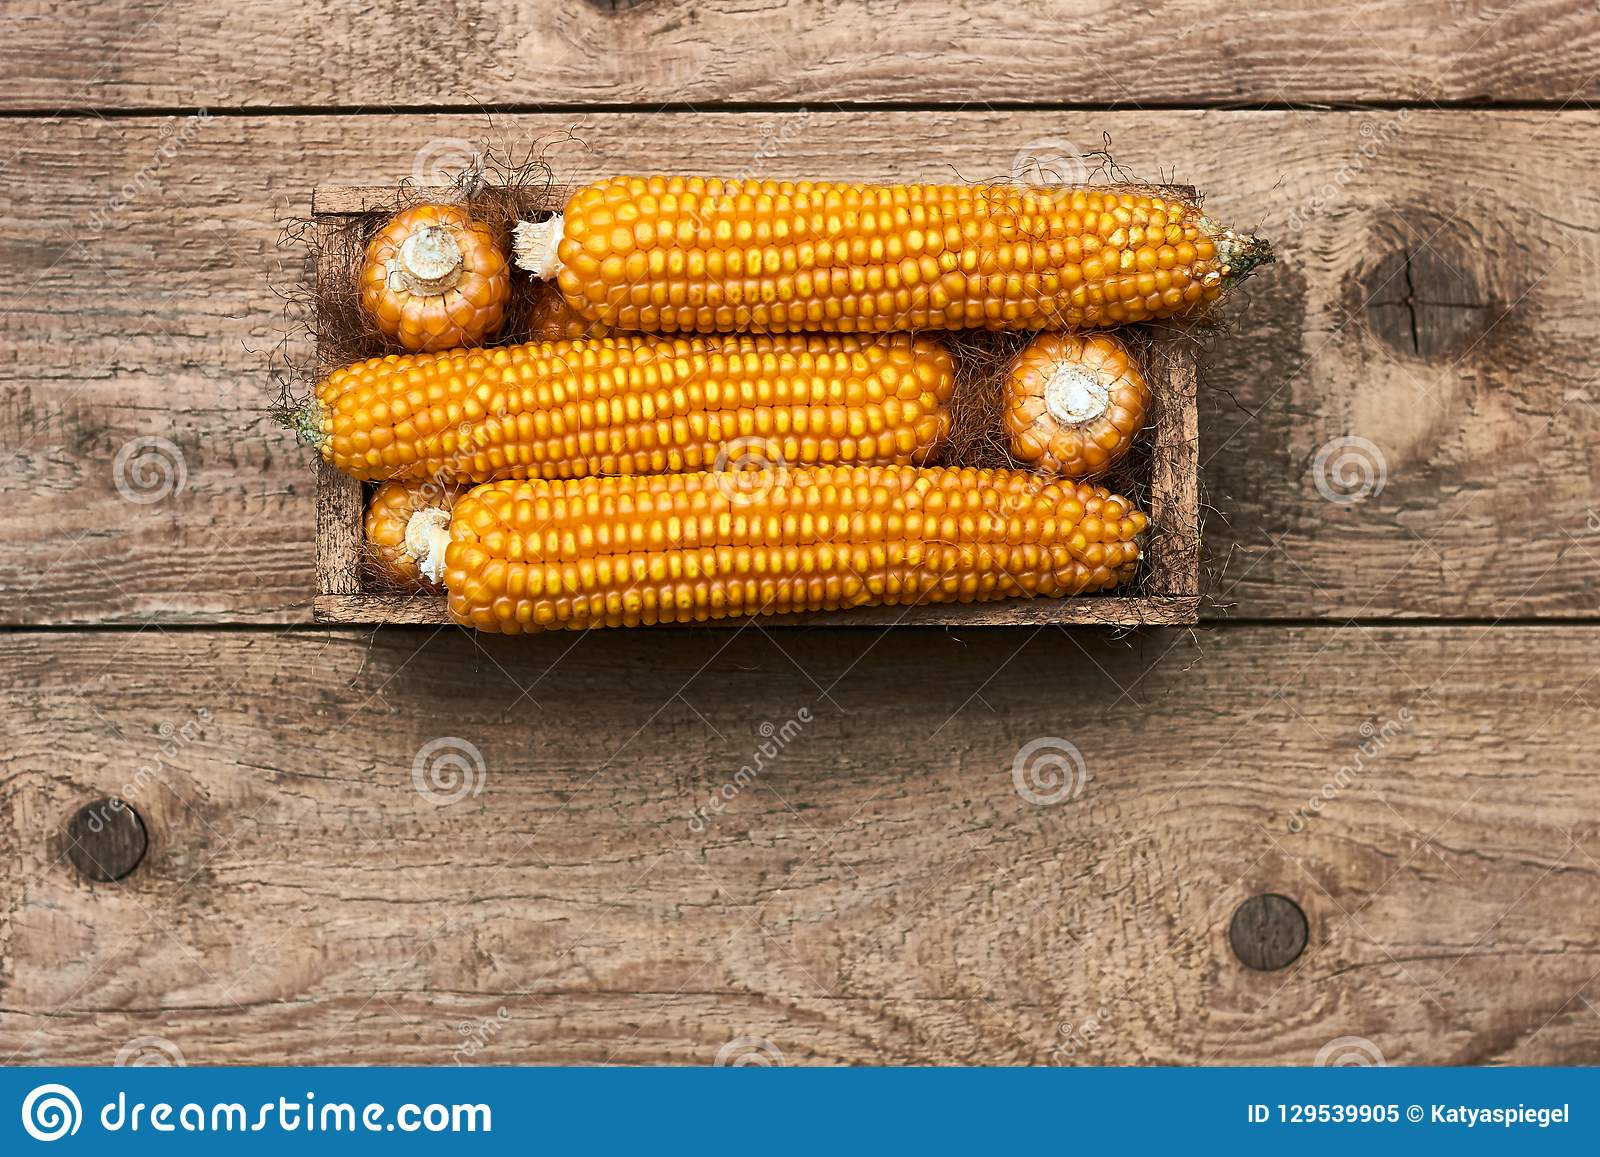 Corn in wooden box on old shabby grungy rustic wooden background, flat lay